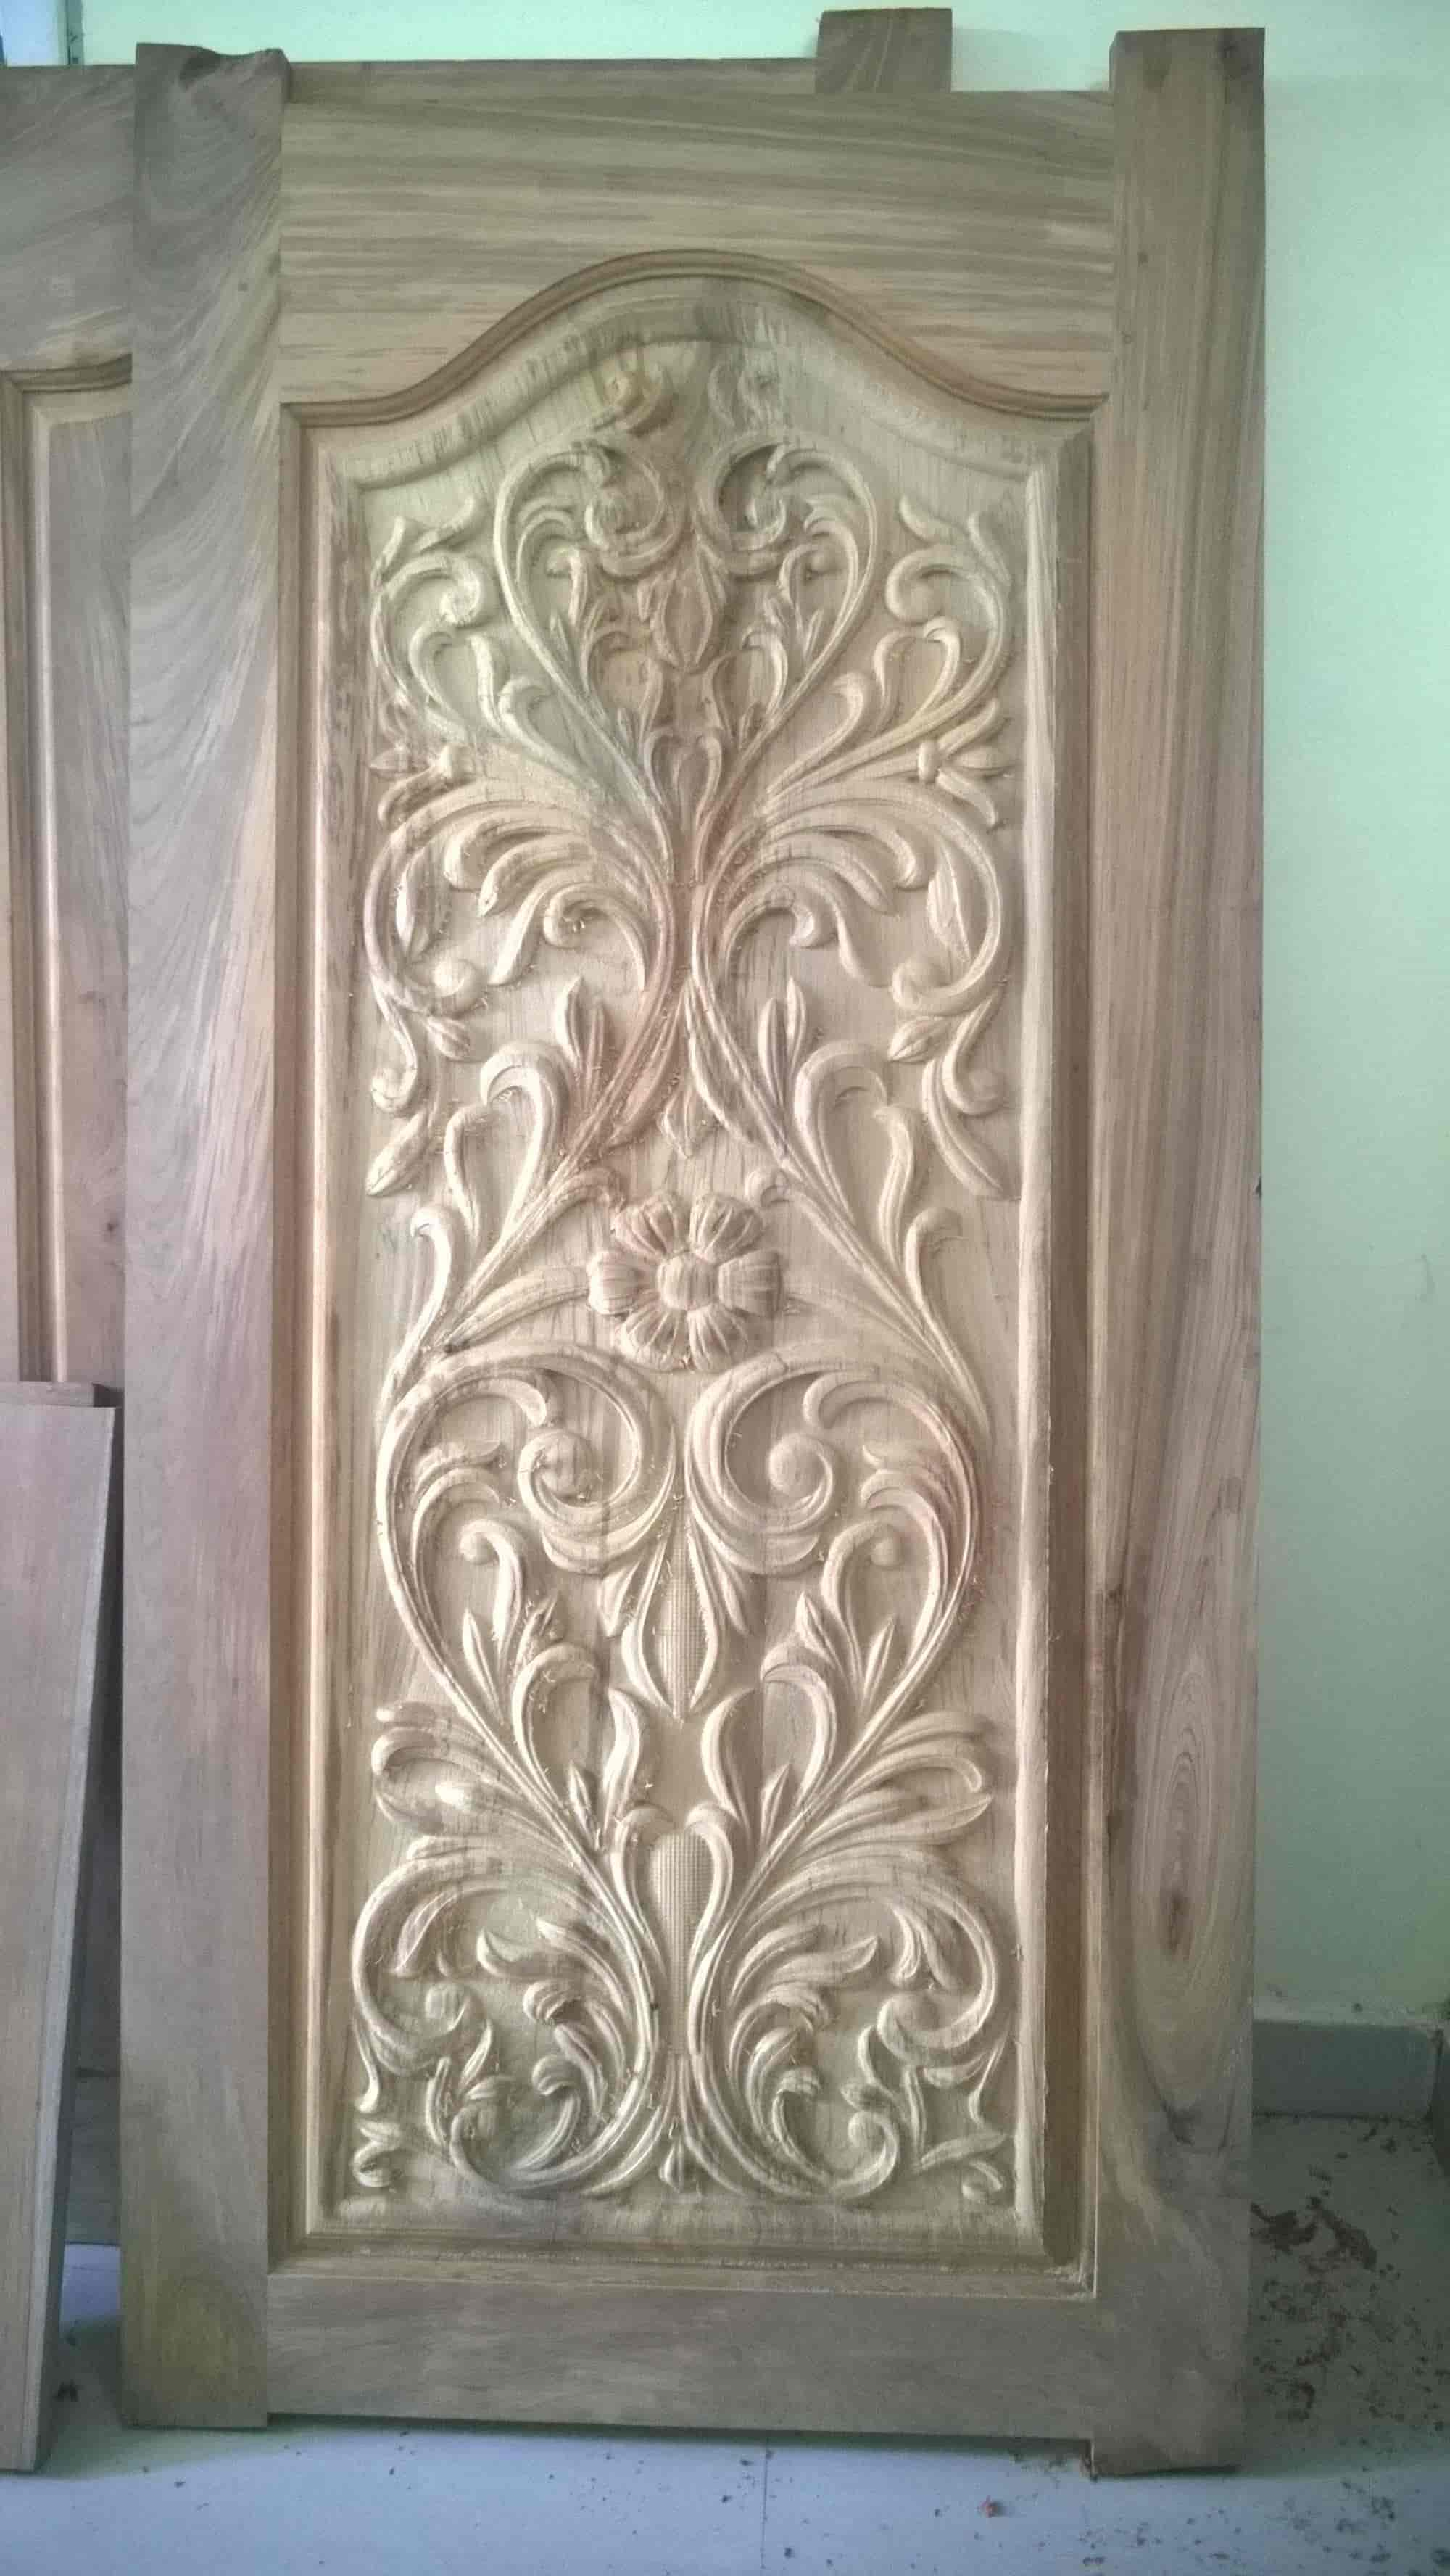 ... Wooden Door Carving Work - Sri Kumaran Constructionu0026 Wood Carving Photos Railway Station KANCHIPURAM ... & Sri Kumaran Construction Wood Carving Photos Railway Station ...